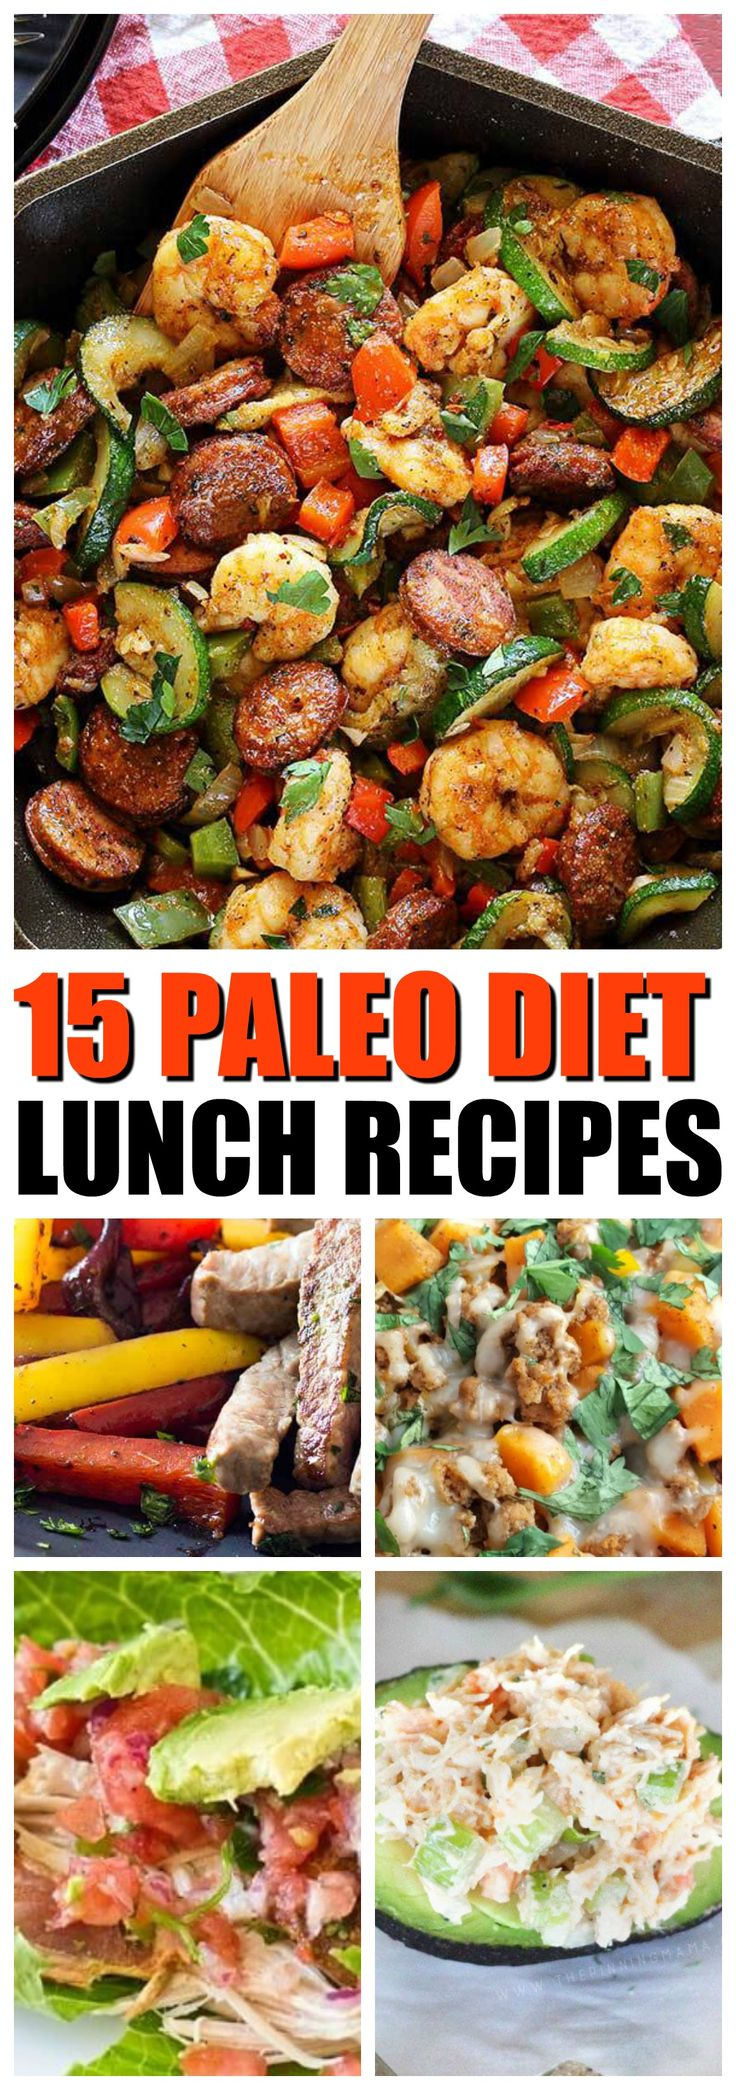 Paleo Diet approved lunch ideas for you! Recipes Paleo approved dishes or help you change up from your regular menu items and perfect for beginners #paleo #dieting